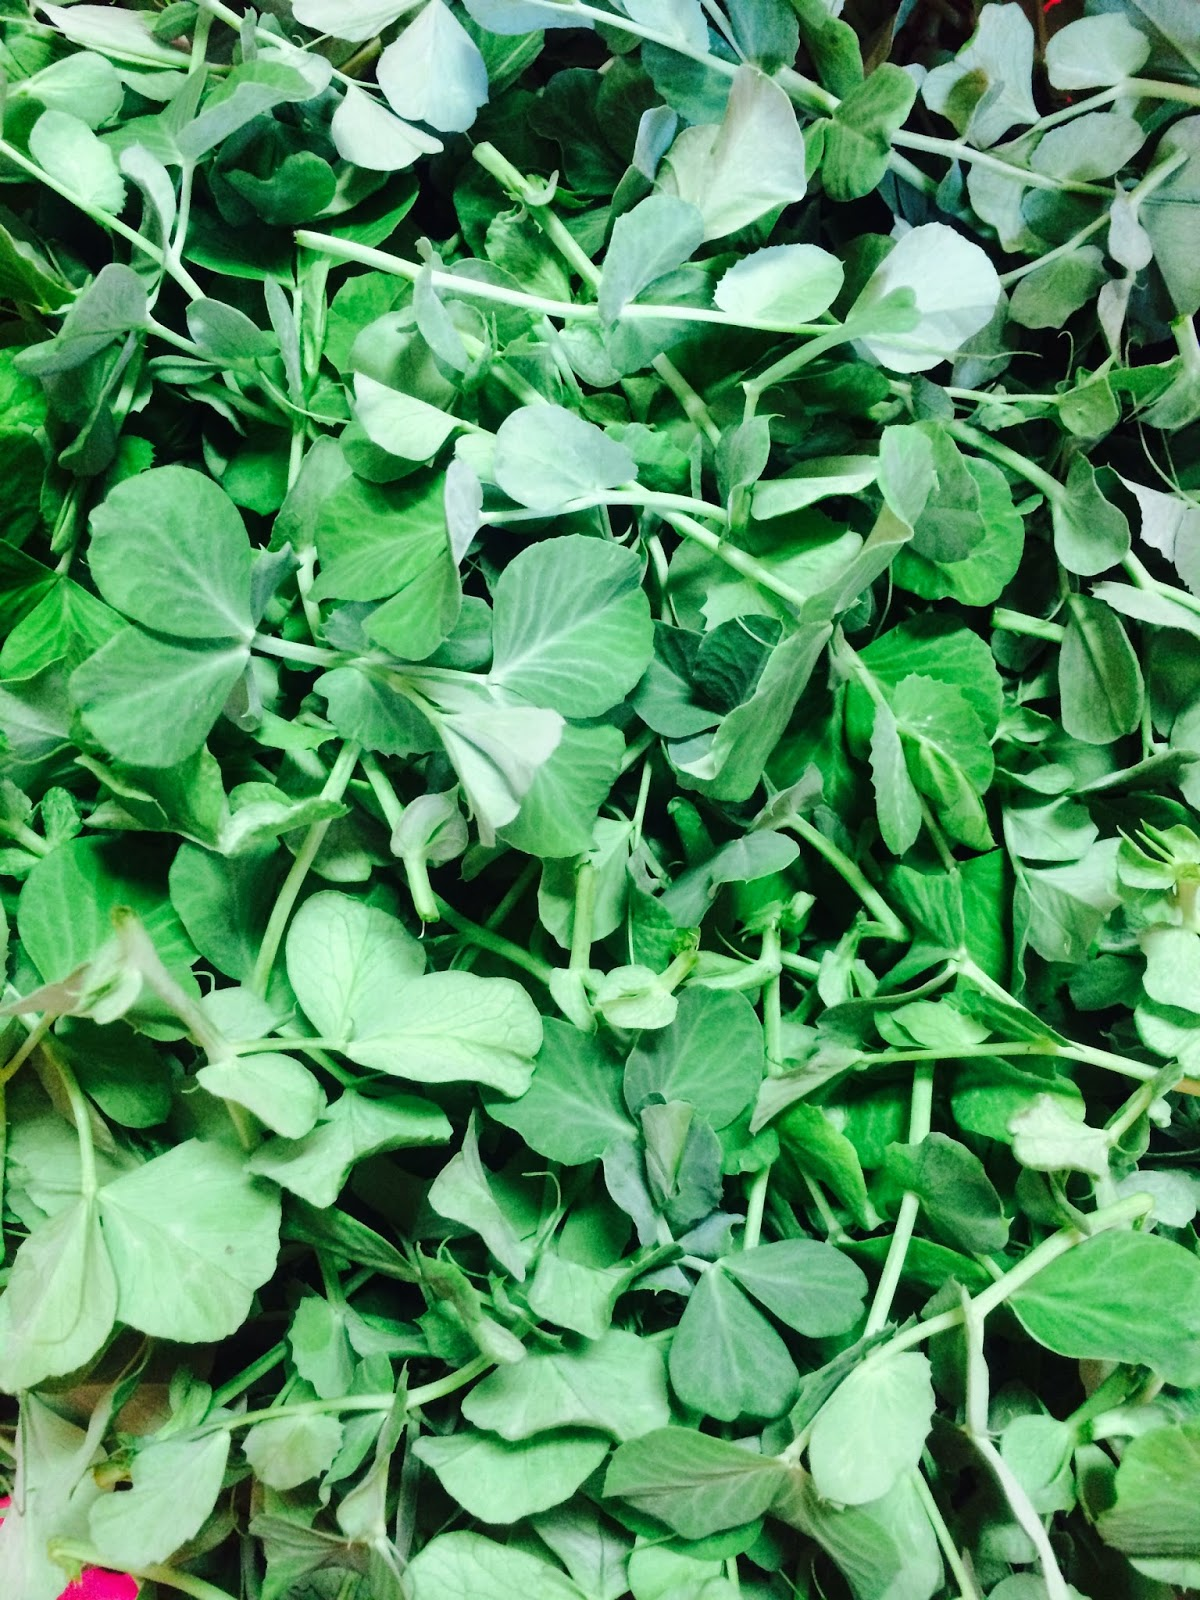 ... pea shoots are delicate and sweet and taste like the pea pods